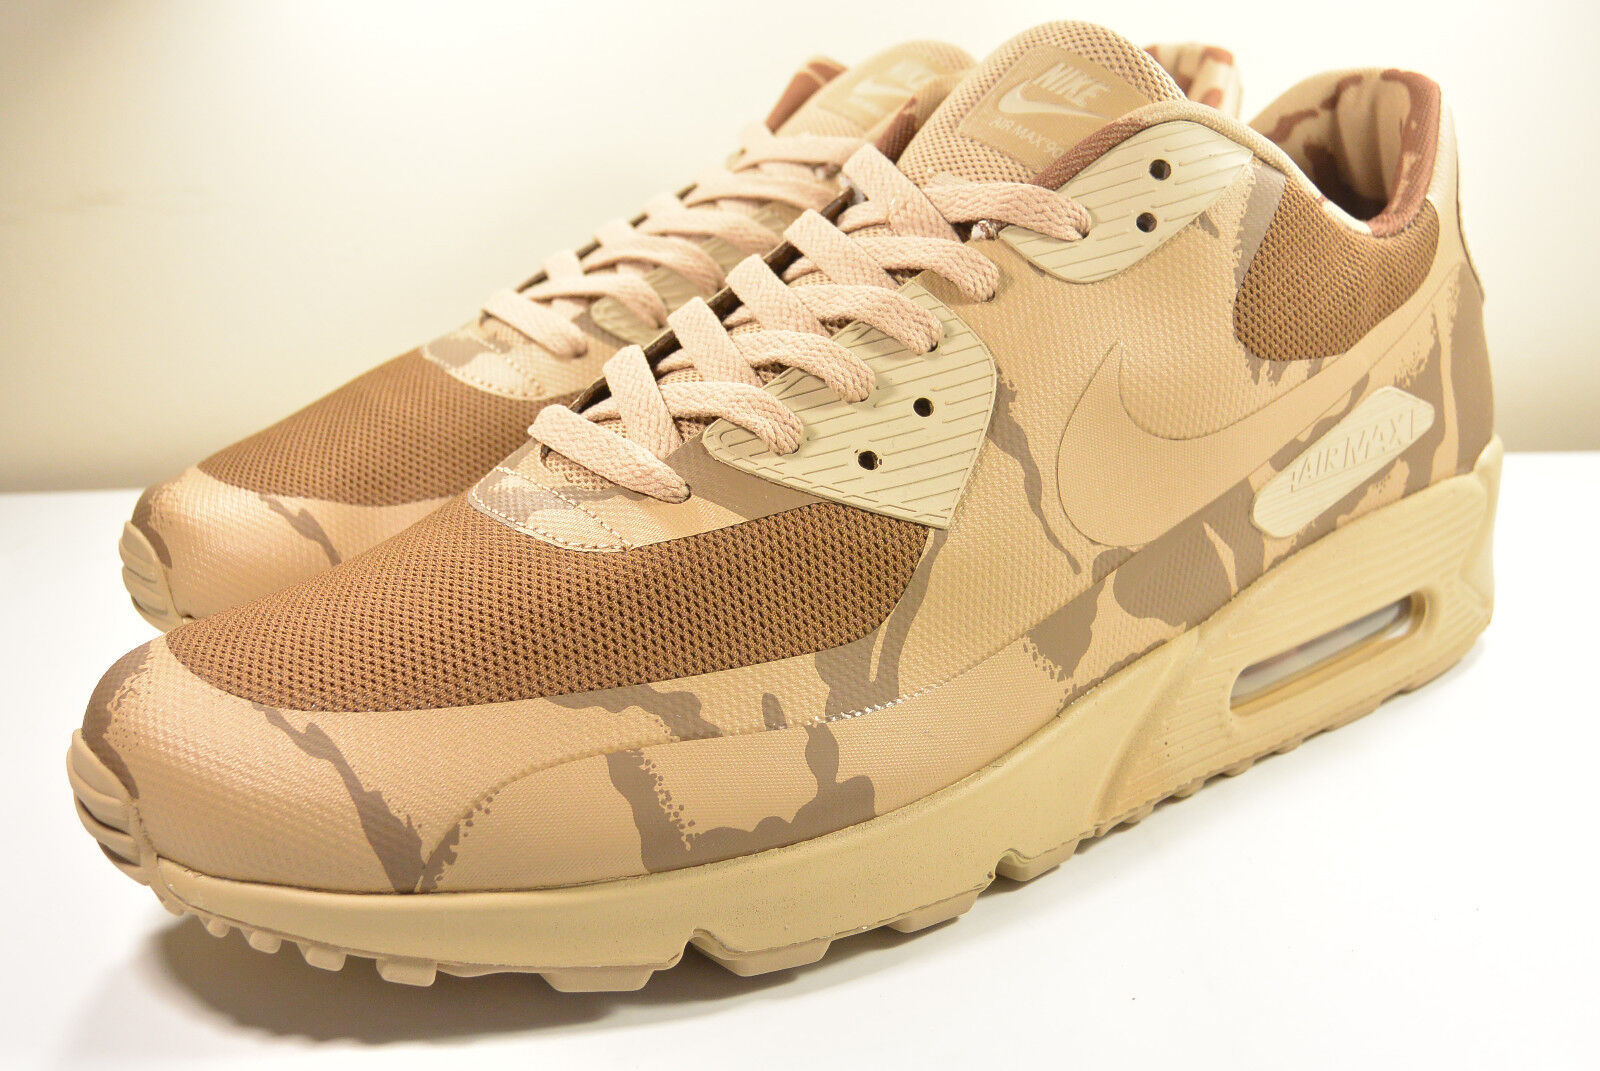 the latest f689e 779e3 Nike Air Max 90 SP UK 2013 Camo Hemp Military Brown Size 13 DS for ...